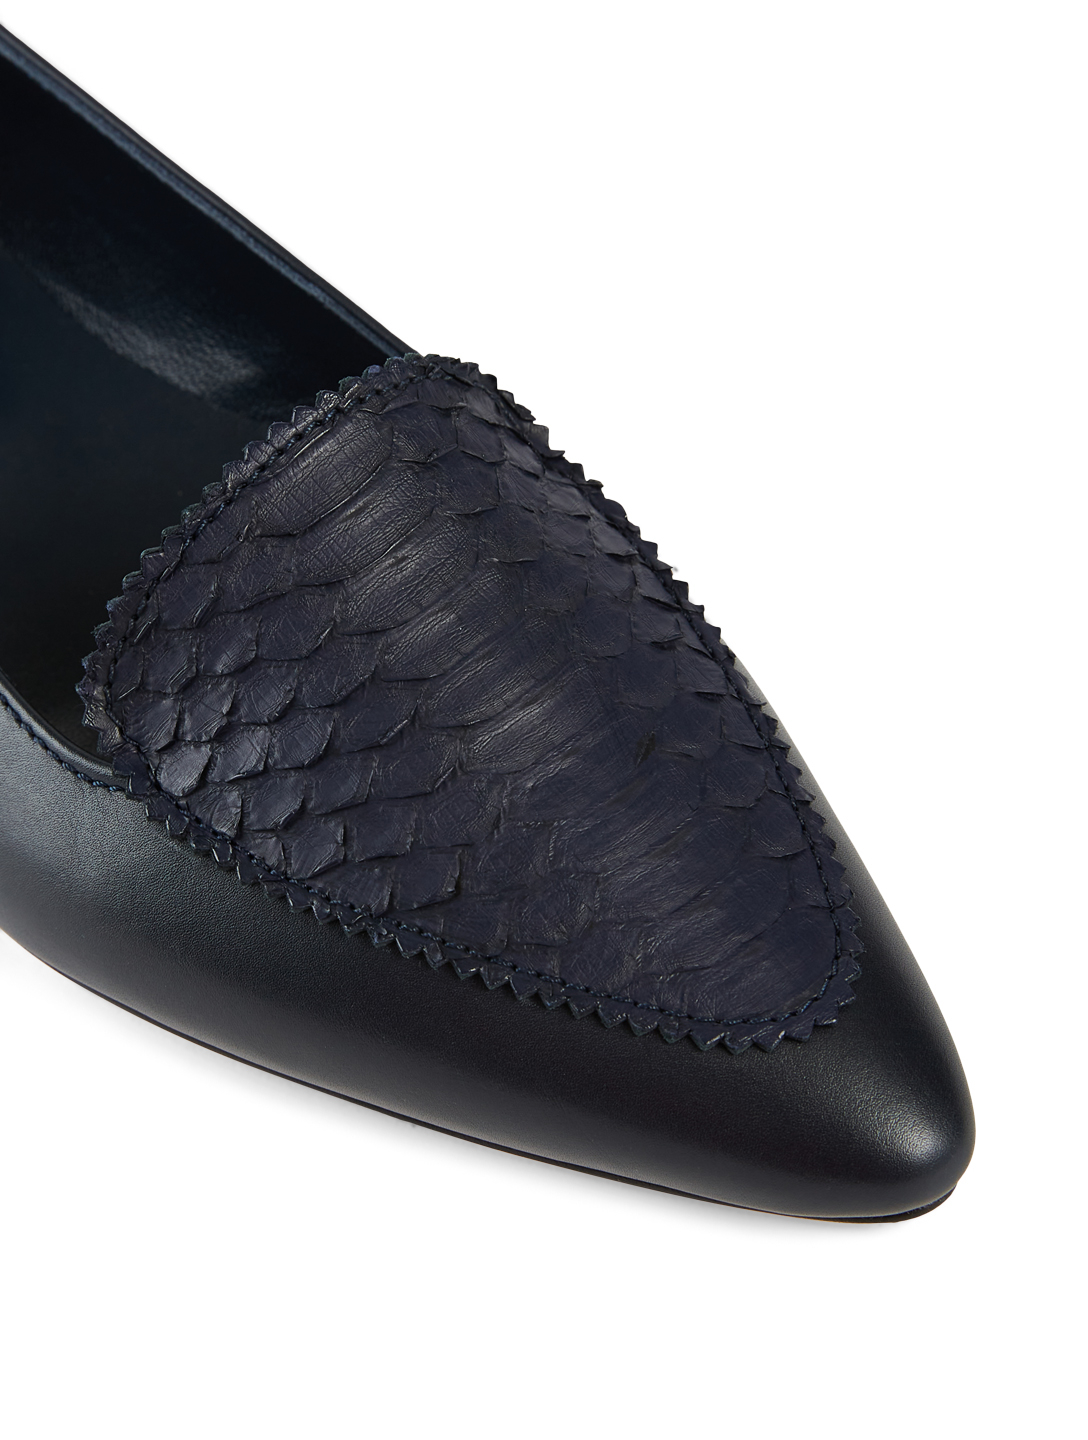 MANOLO BLAHNIK Agos Leather And Snakeskin Loafers Women's Blue